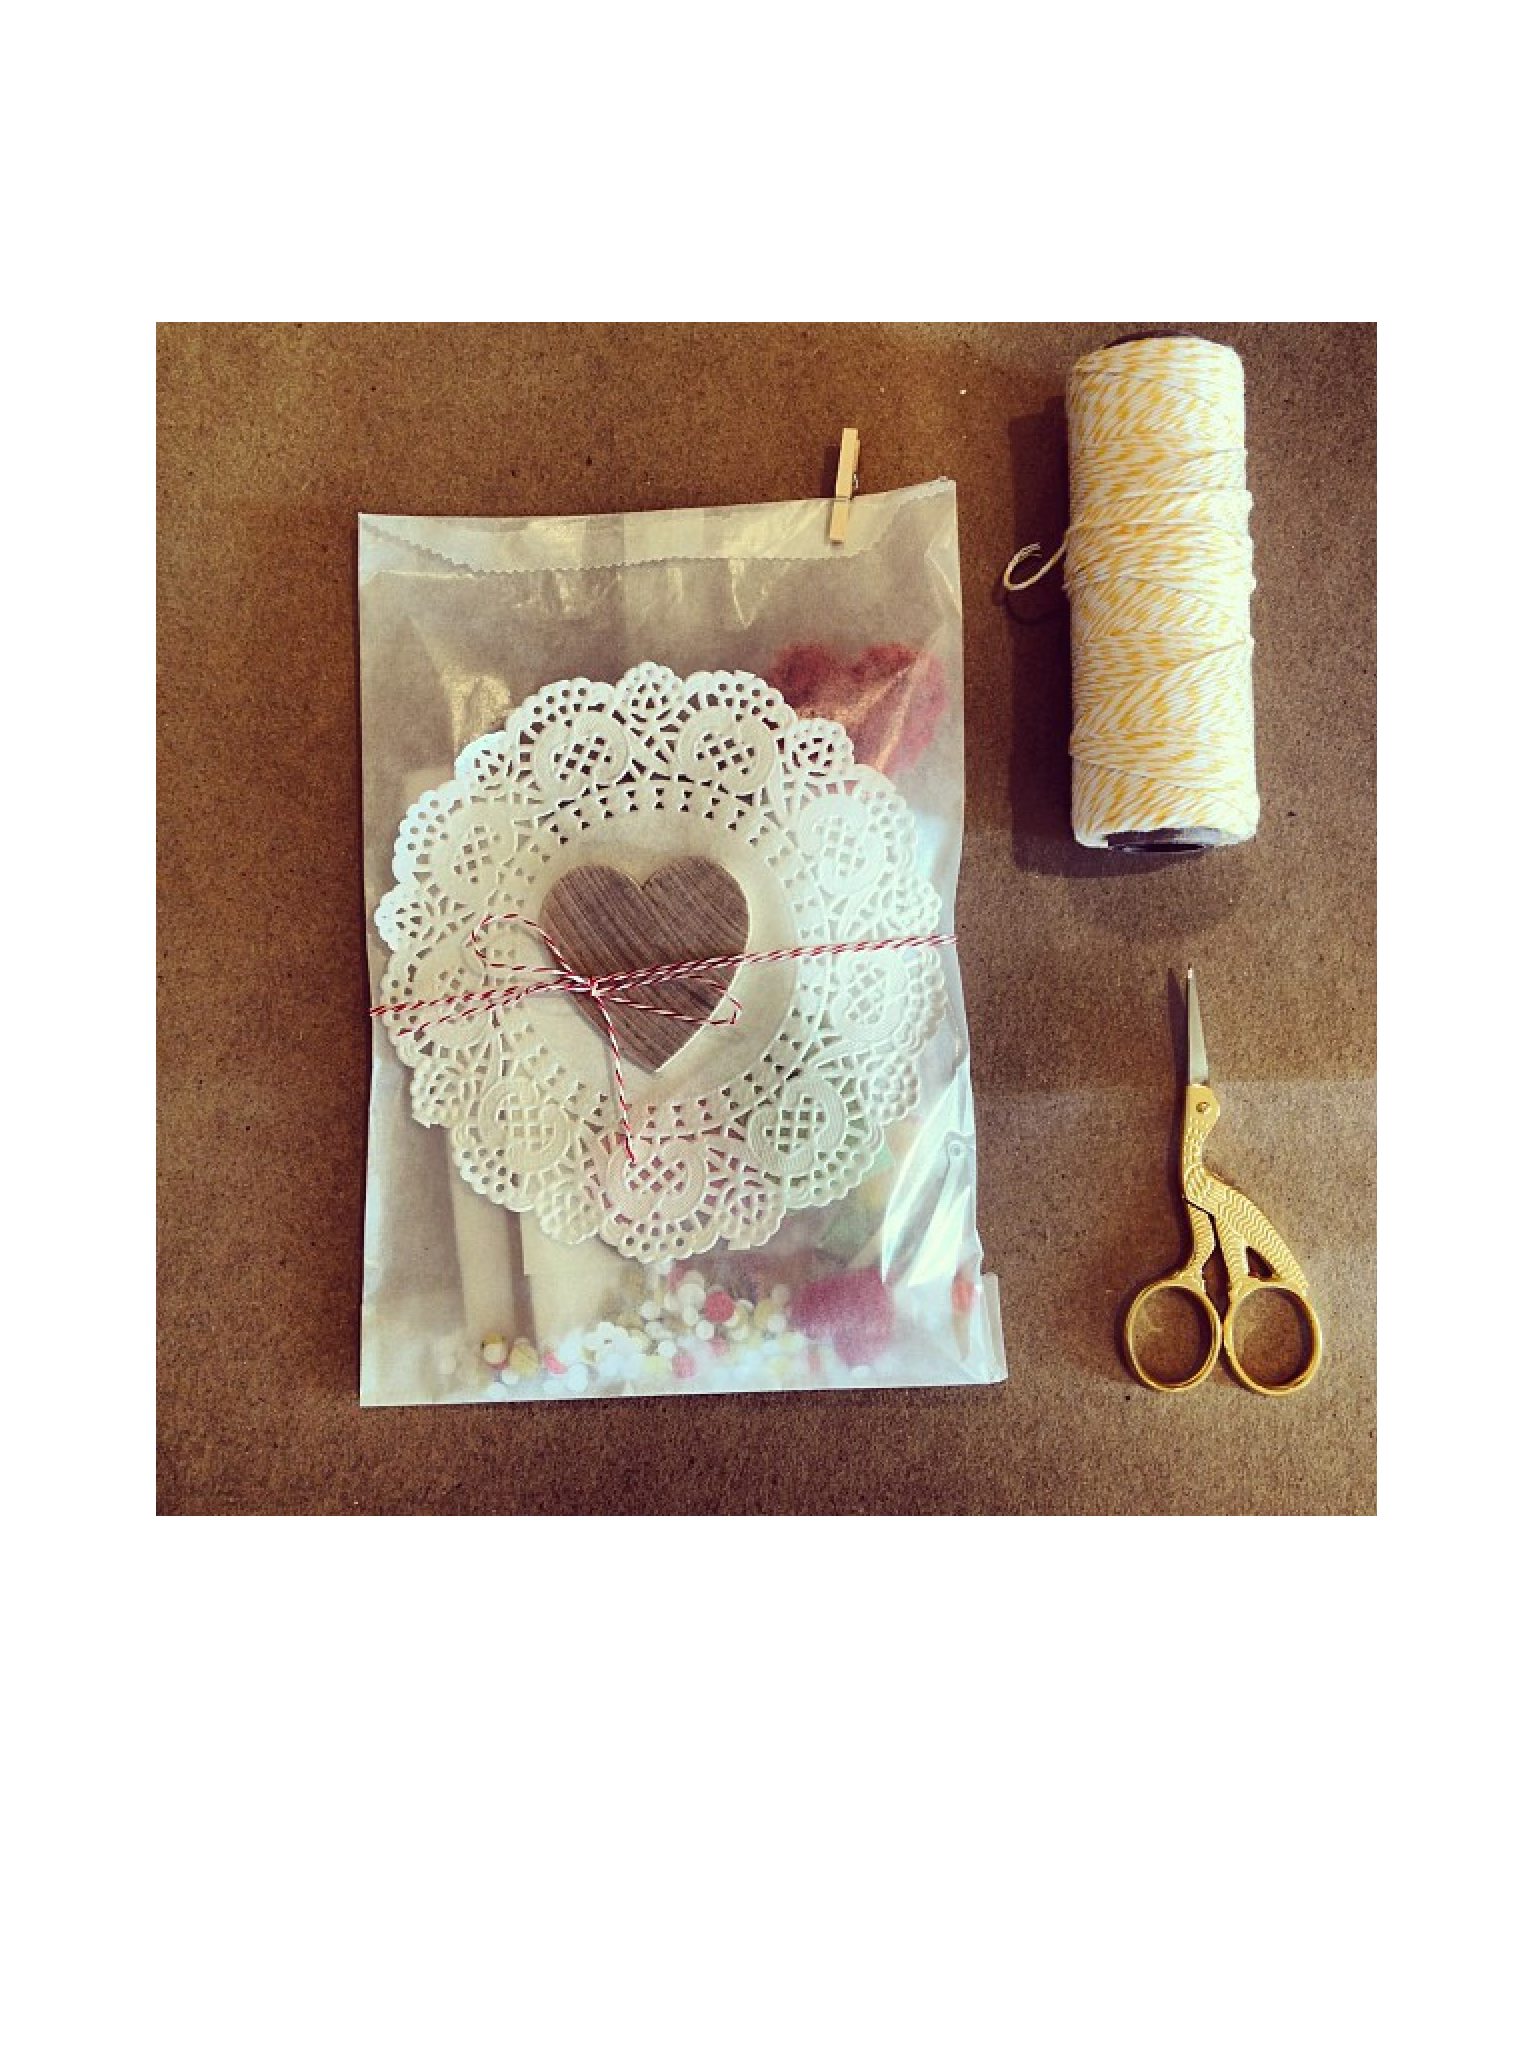 Super Cute Use Of Doily And Twine Gift Wrapping Ideas Pinterest